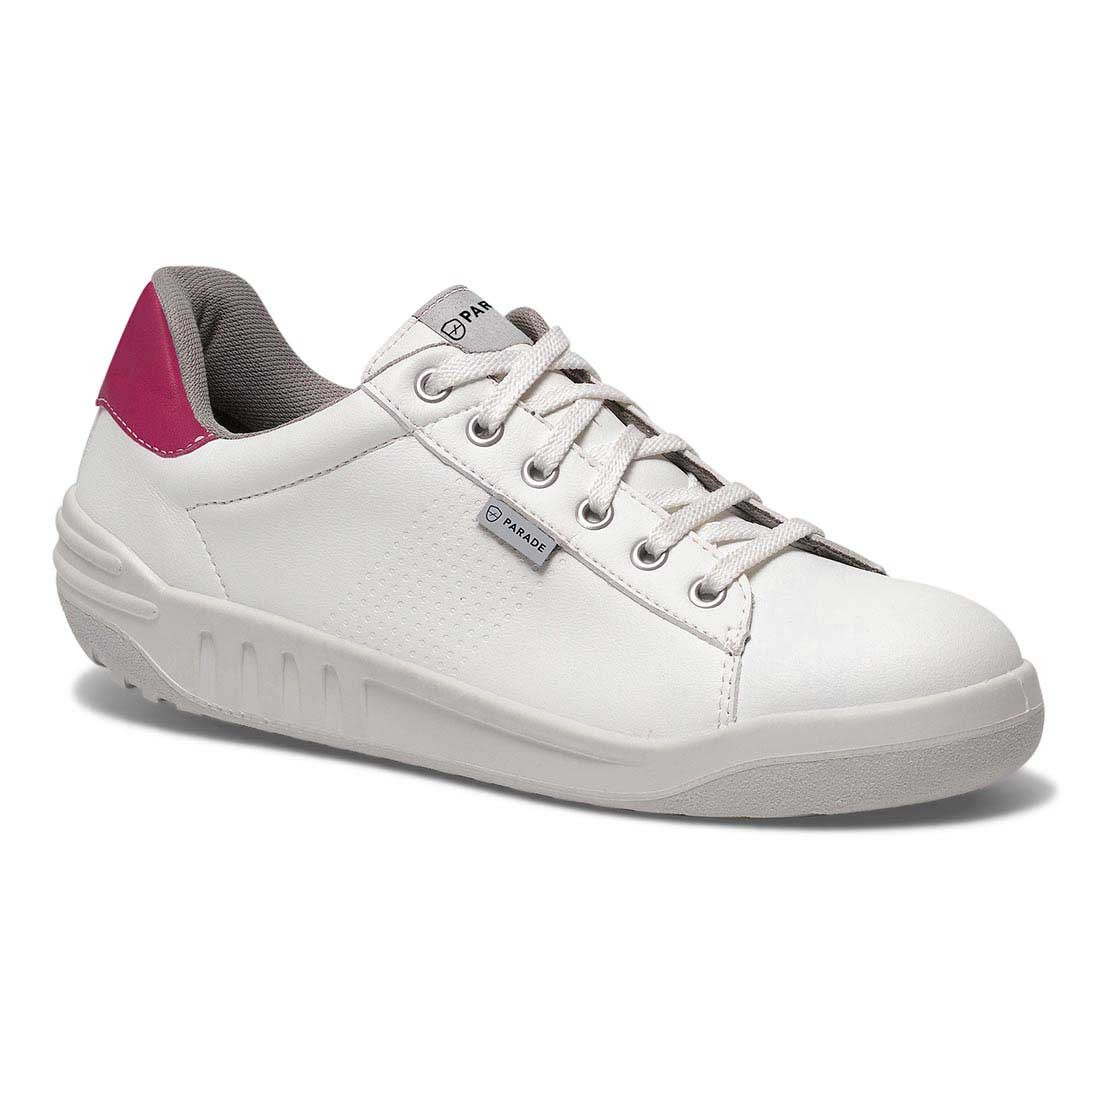 Parade Jamma Womens VPS White and Pink Ladies Work Safety Trainers